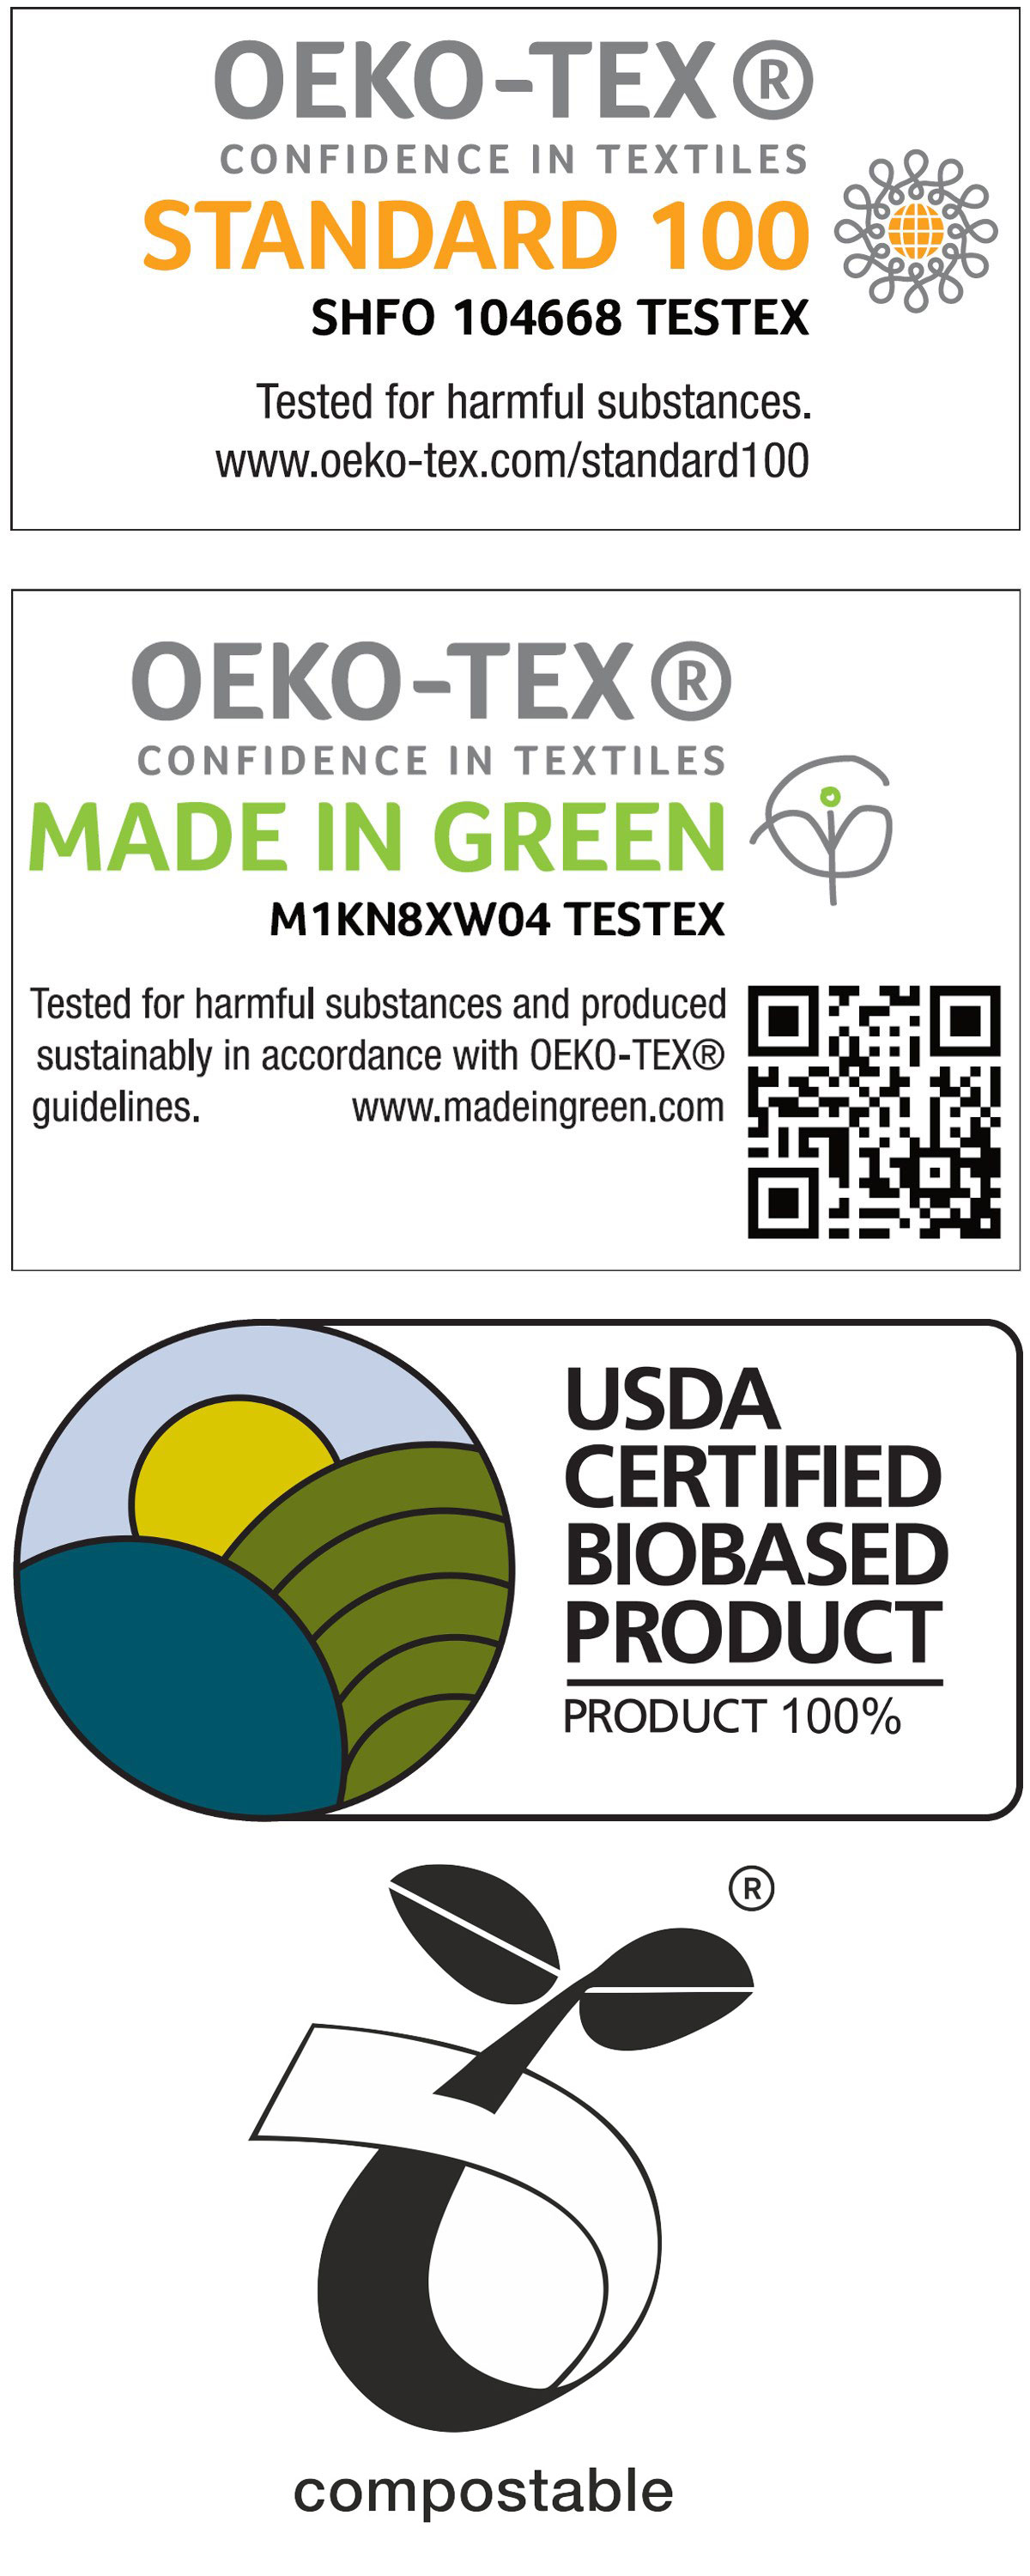 USDA Certified Biobased Product